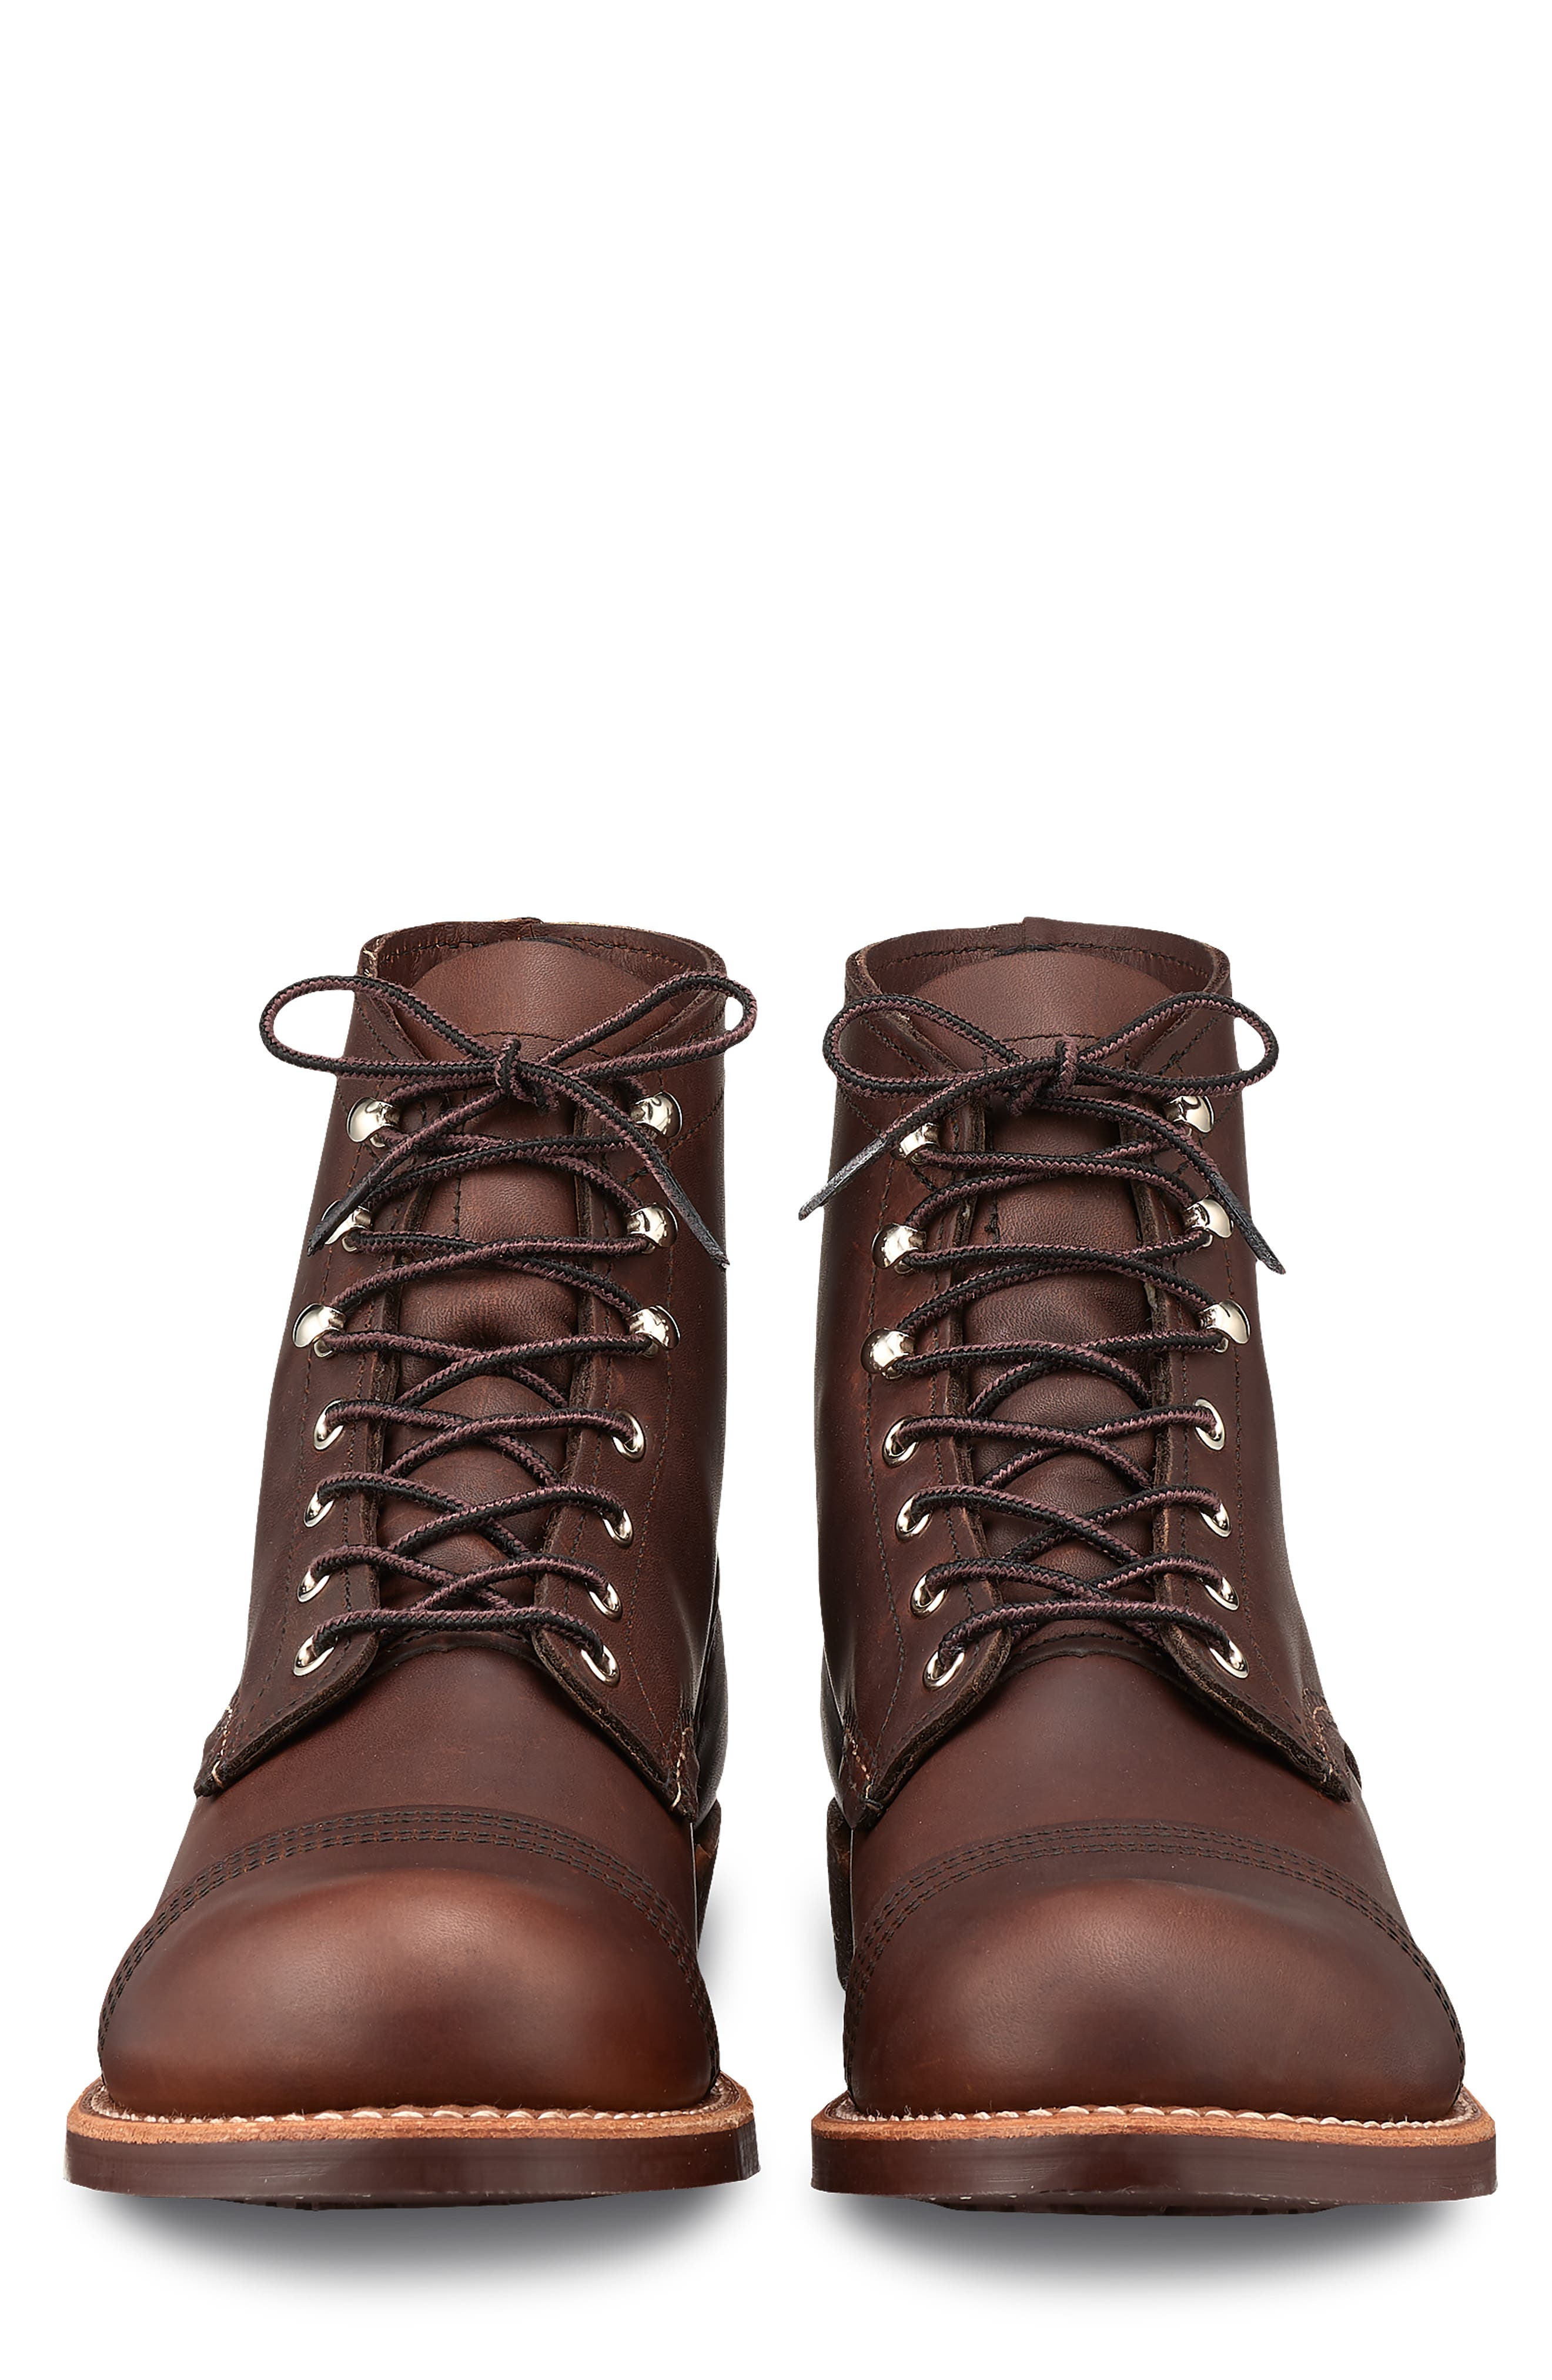 'Iron Ranger' 6 Inch Boot,                             Alternate thumbnail 3, color,                             AMBER HARNESS LEATHER